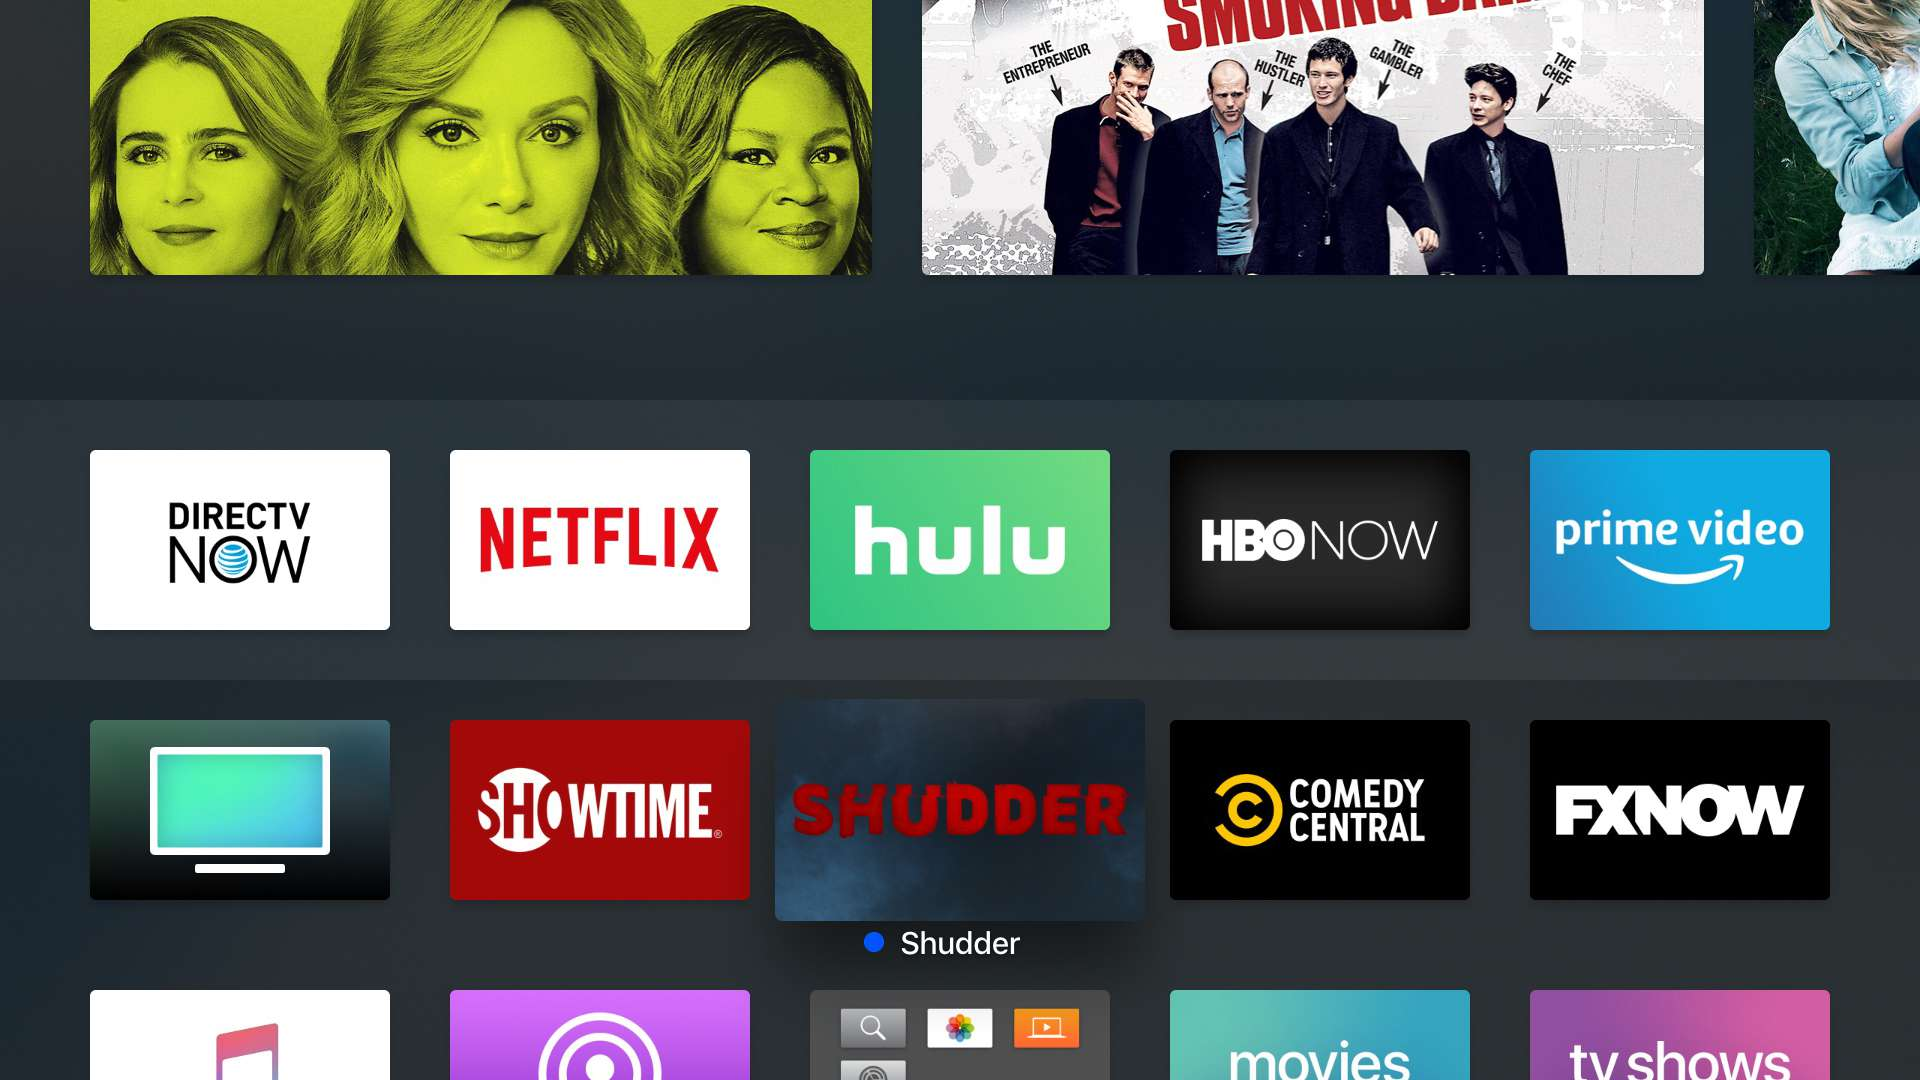 15 Awesome Things You Can Do With Apple TV